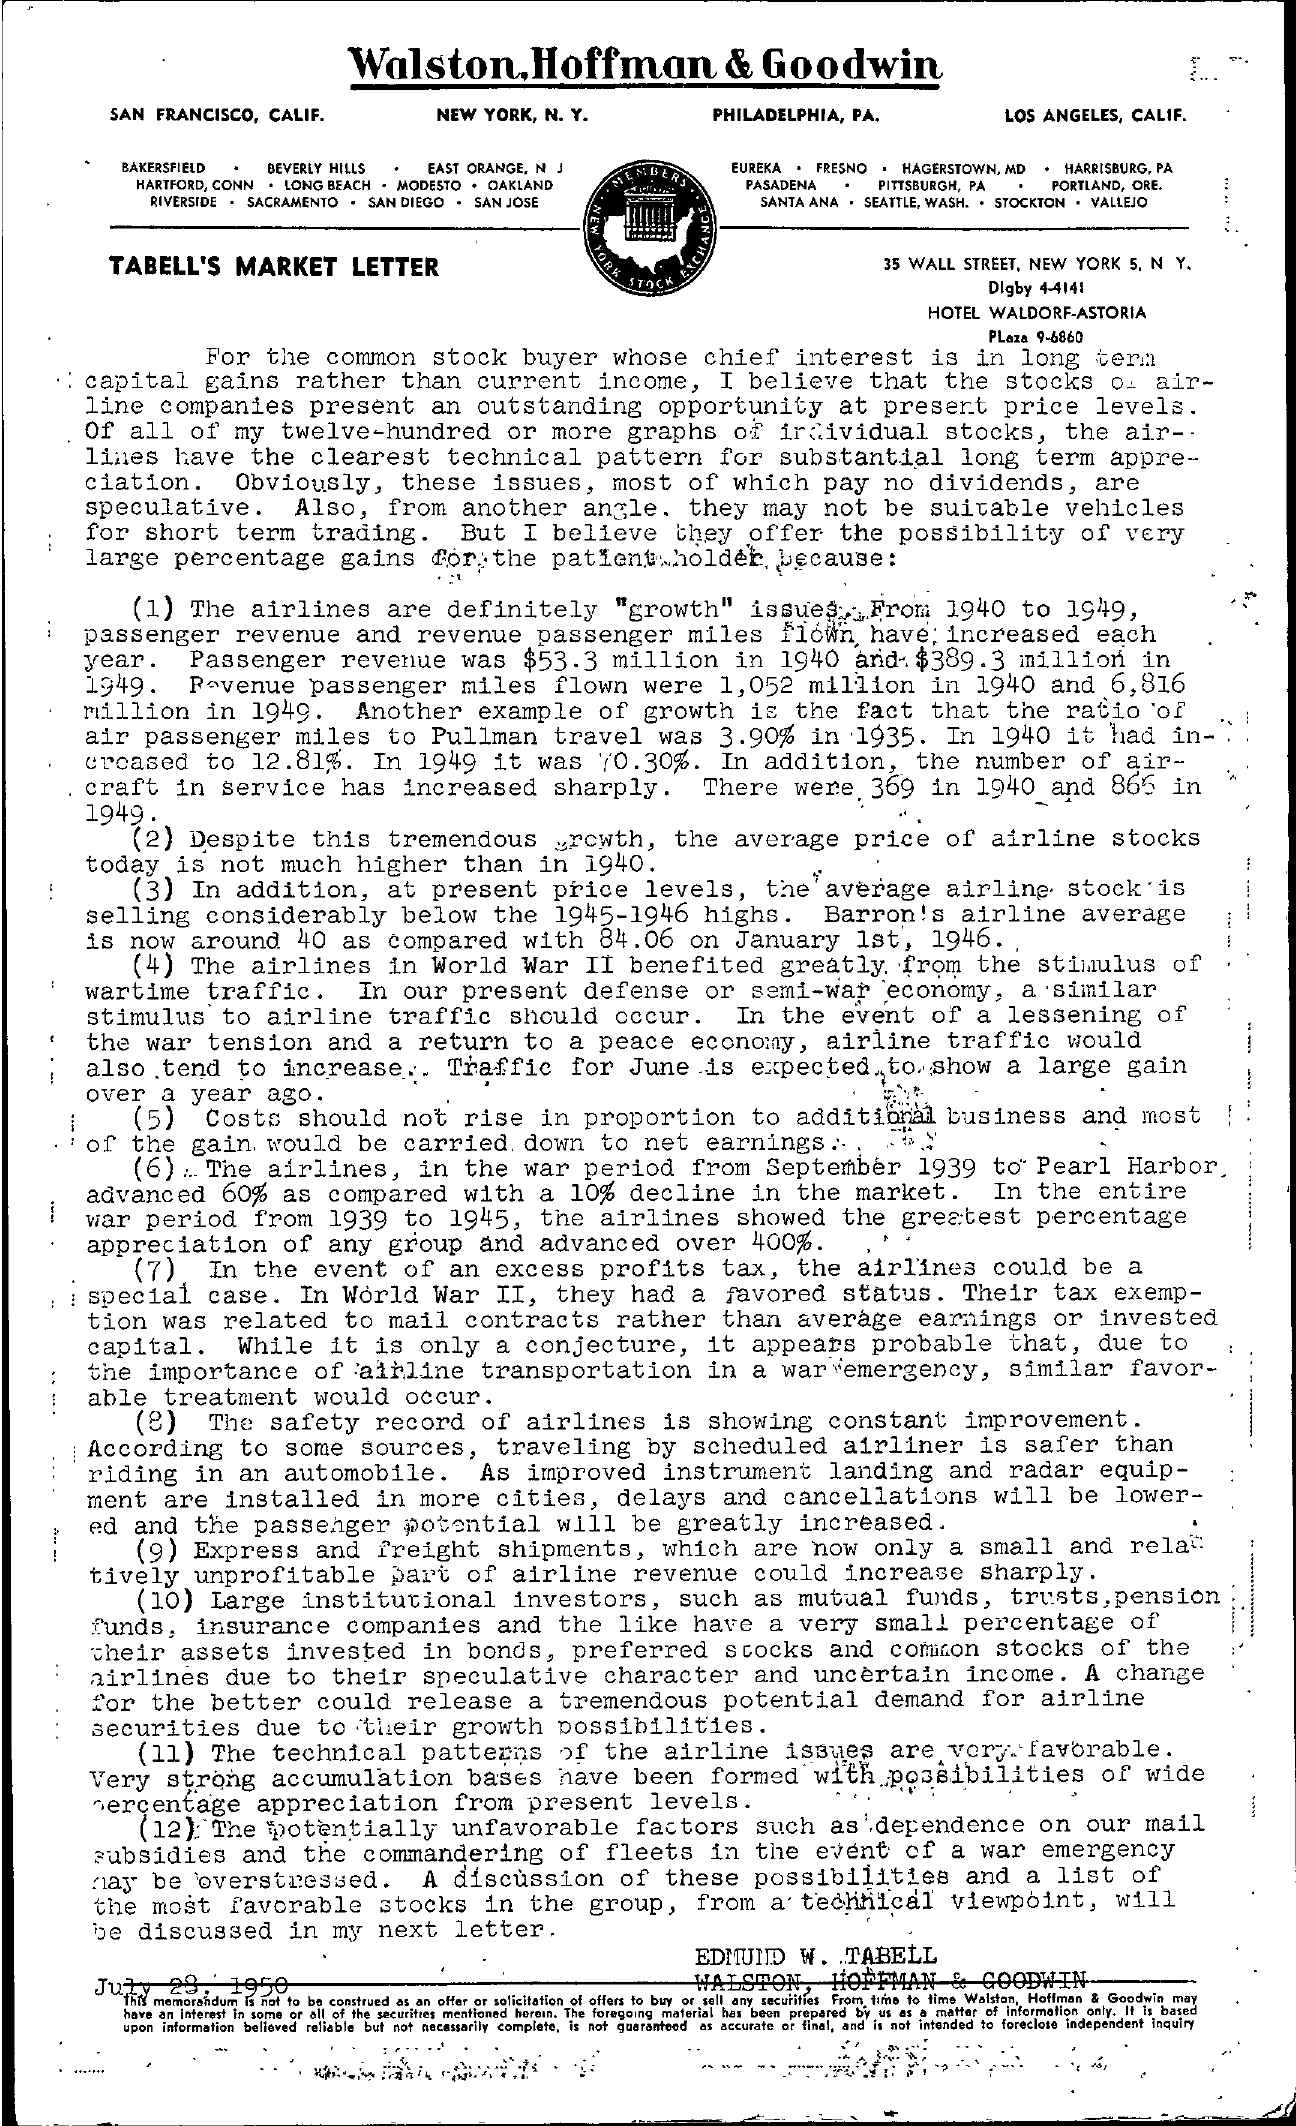 Tabell's Market Letter - July 29, 1950